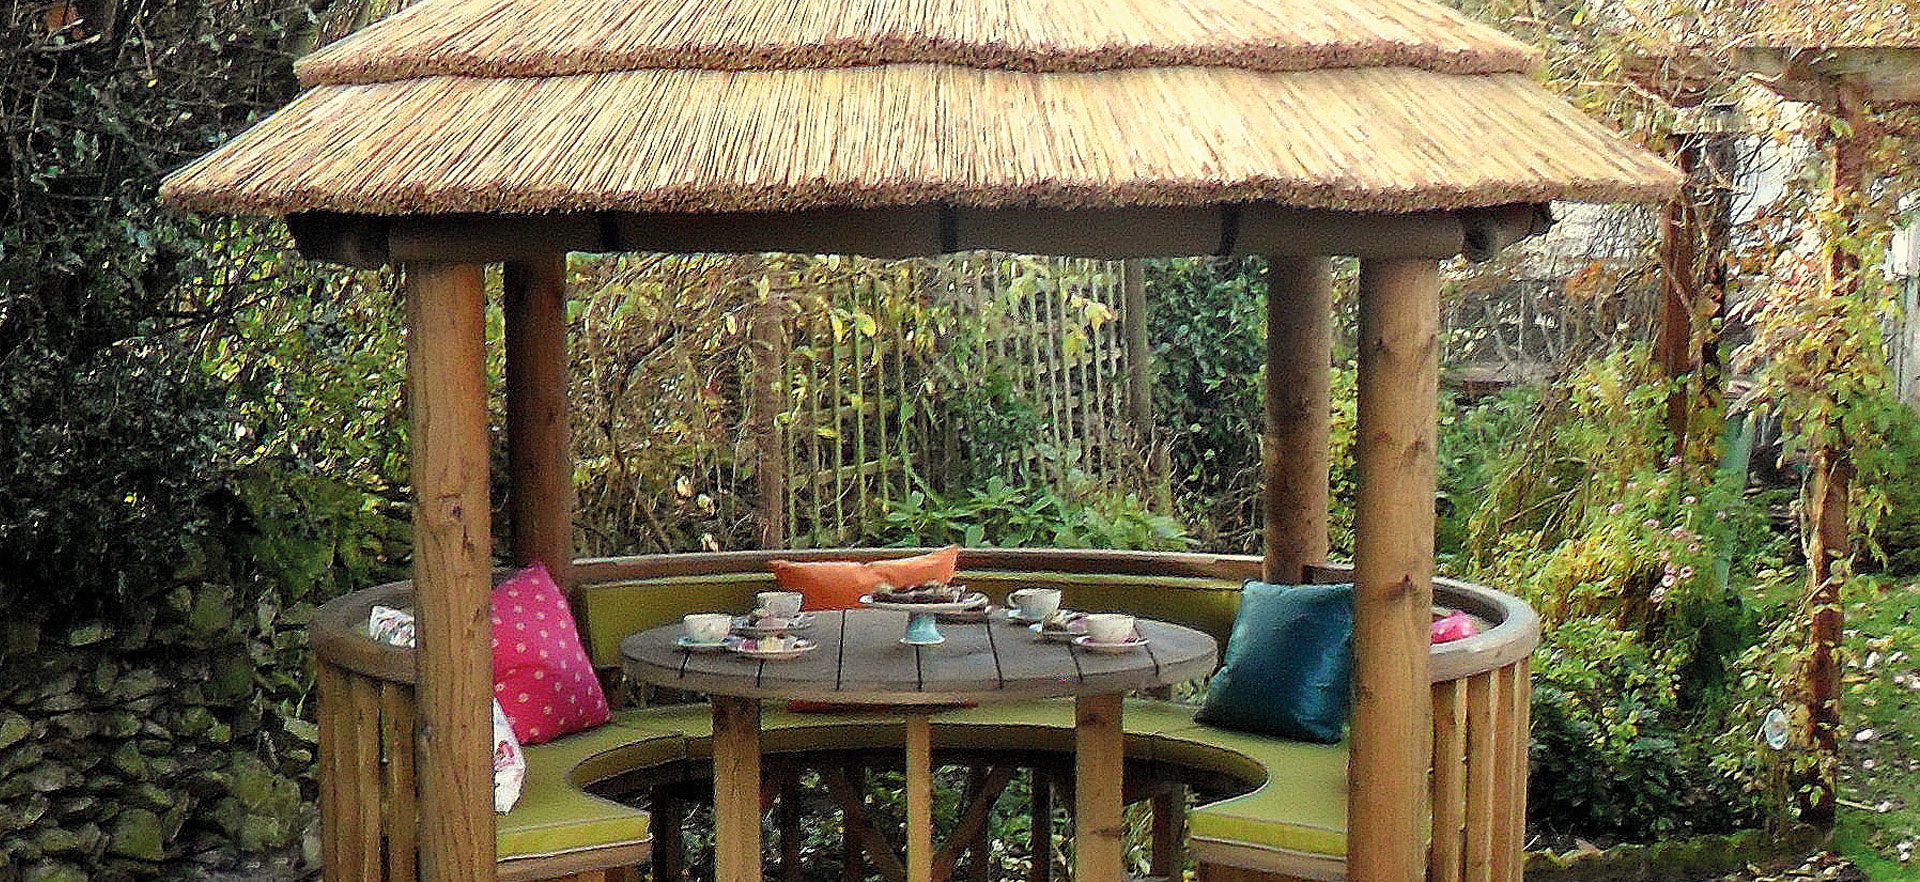 3 metre thatched gazebo in enclosed garden surrounded by foliage